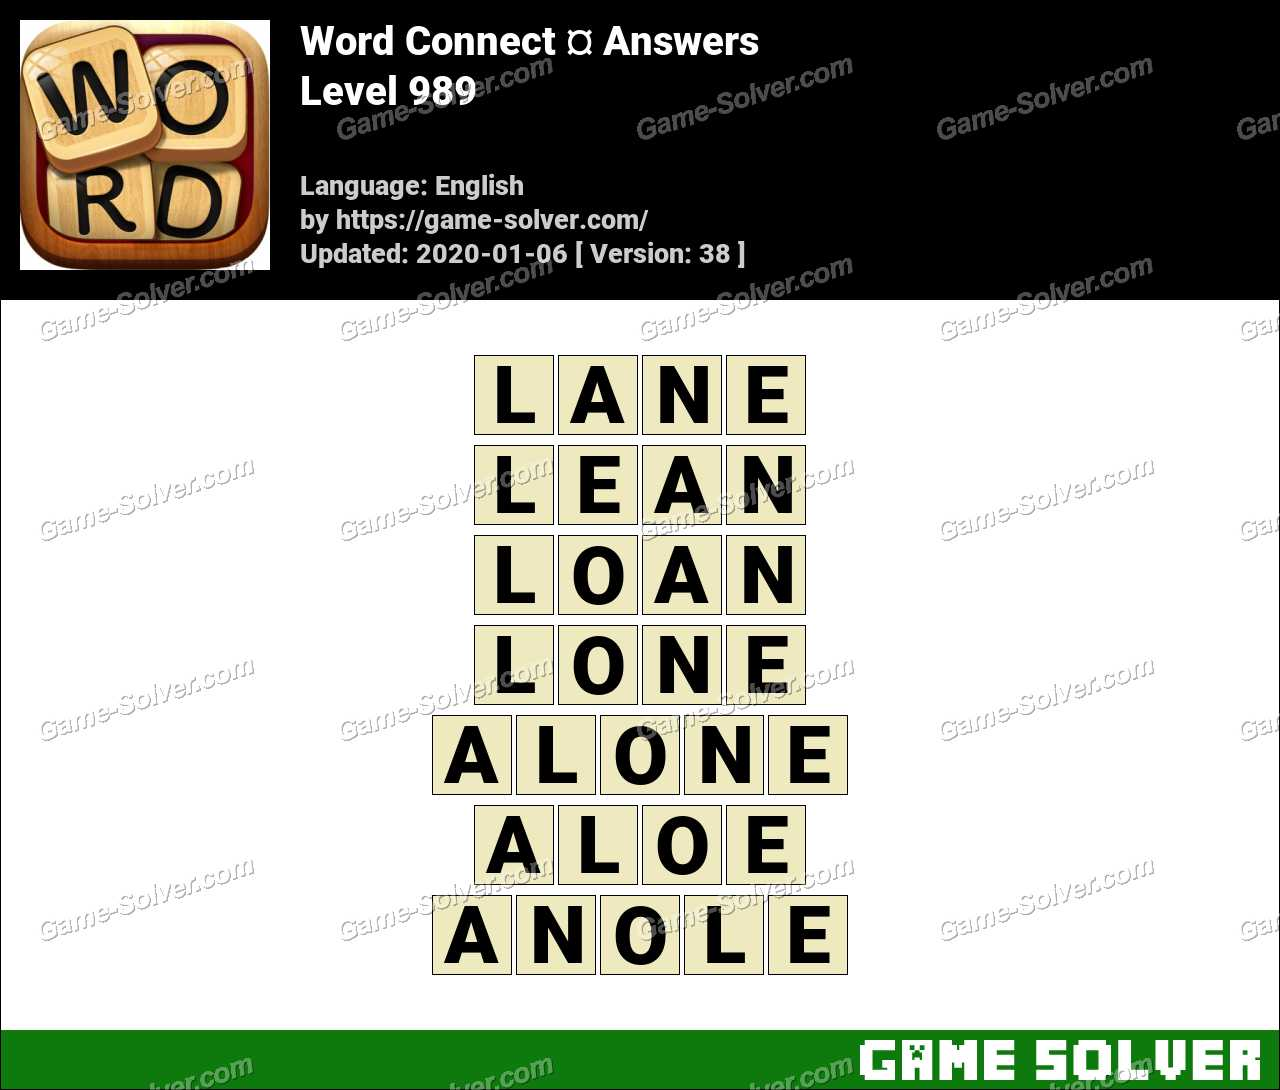 Word Connect Level 989 Answers